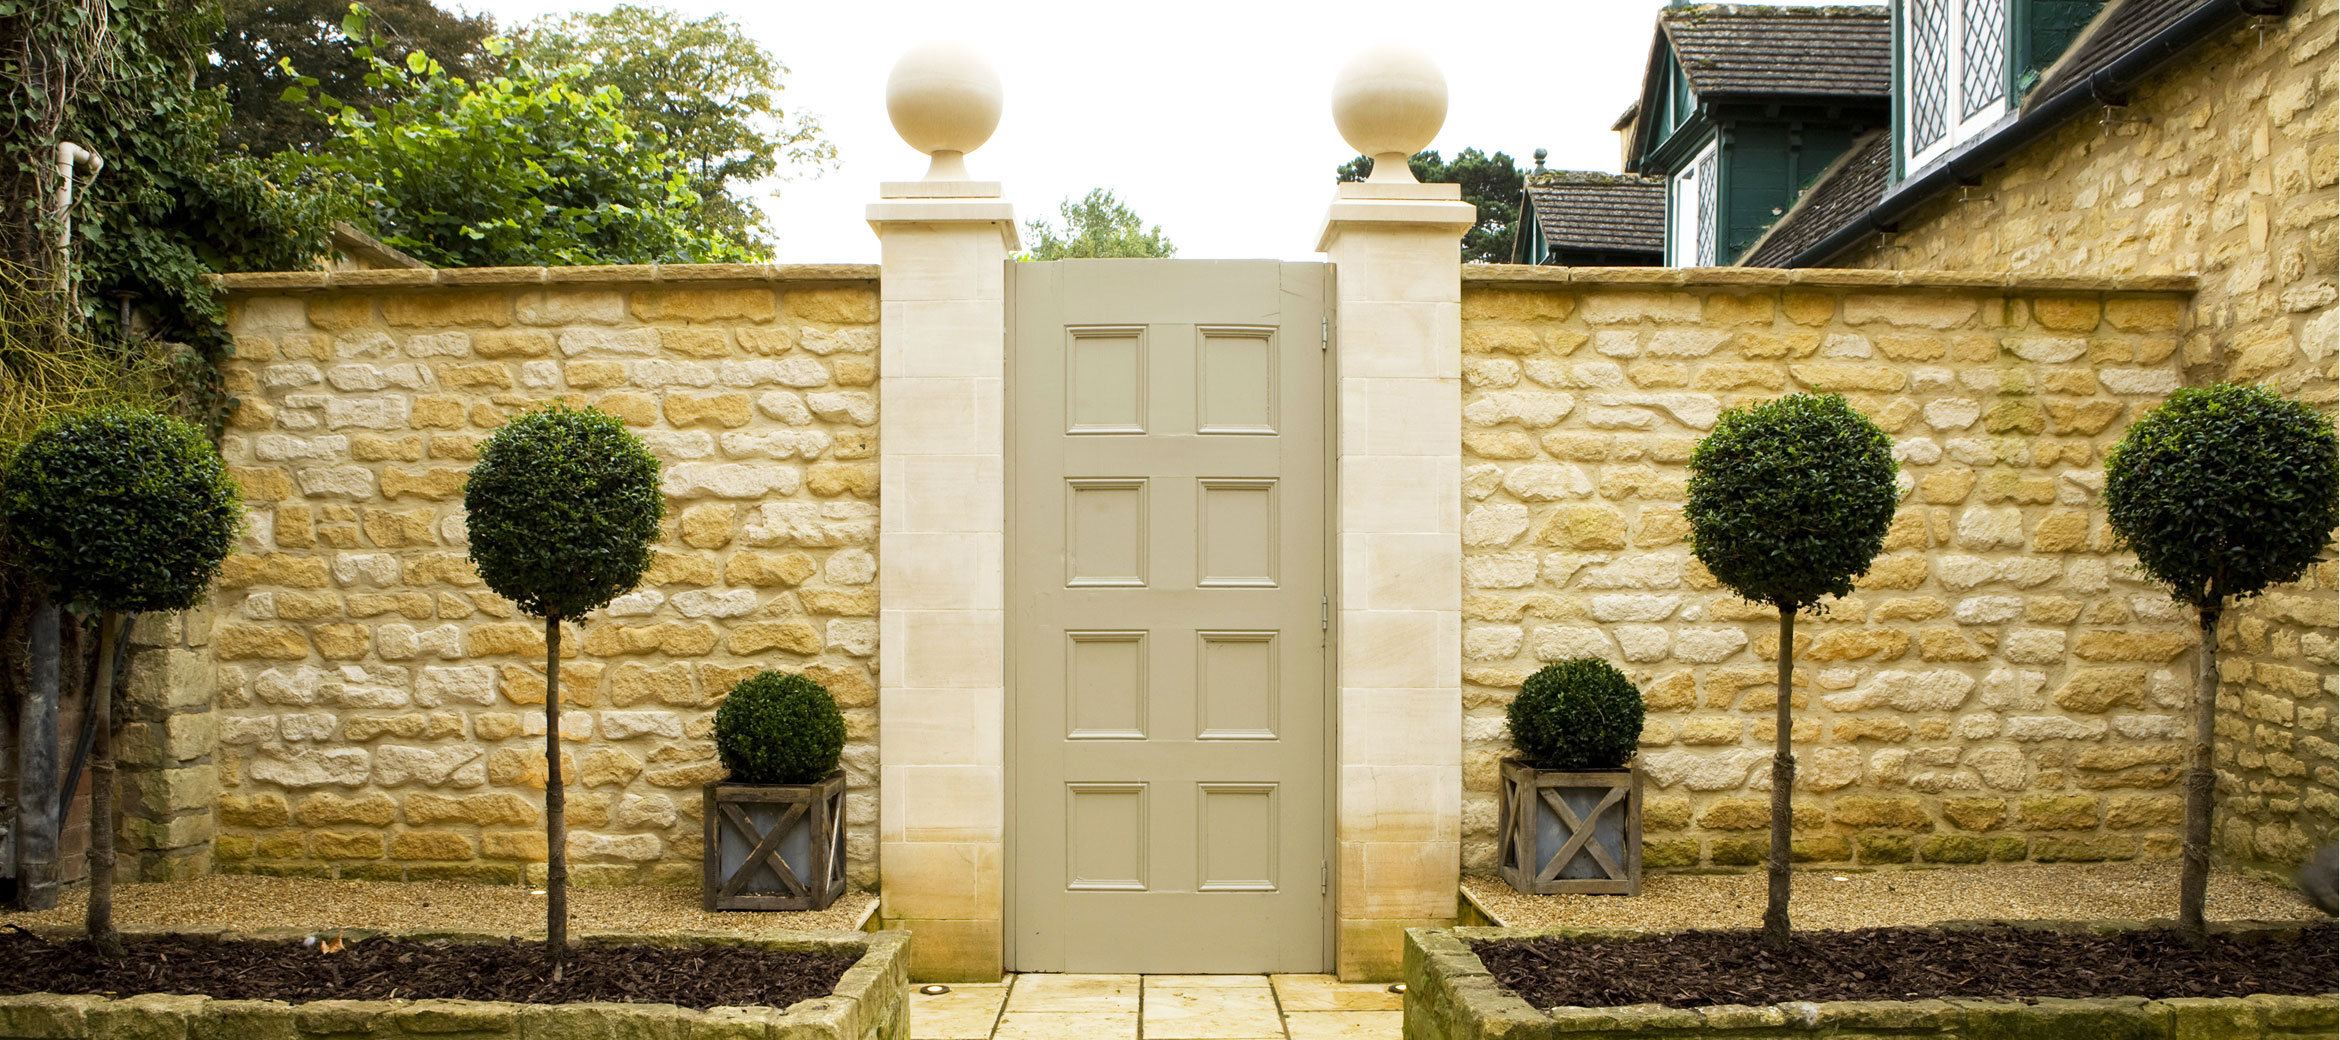 Singer-House-chipping-campden-courtyard-garden